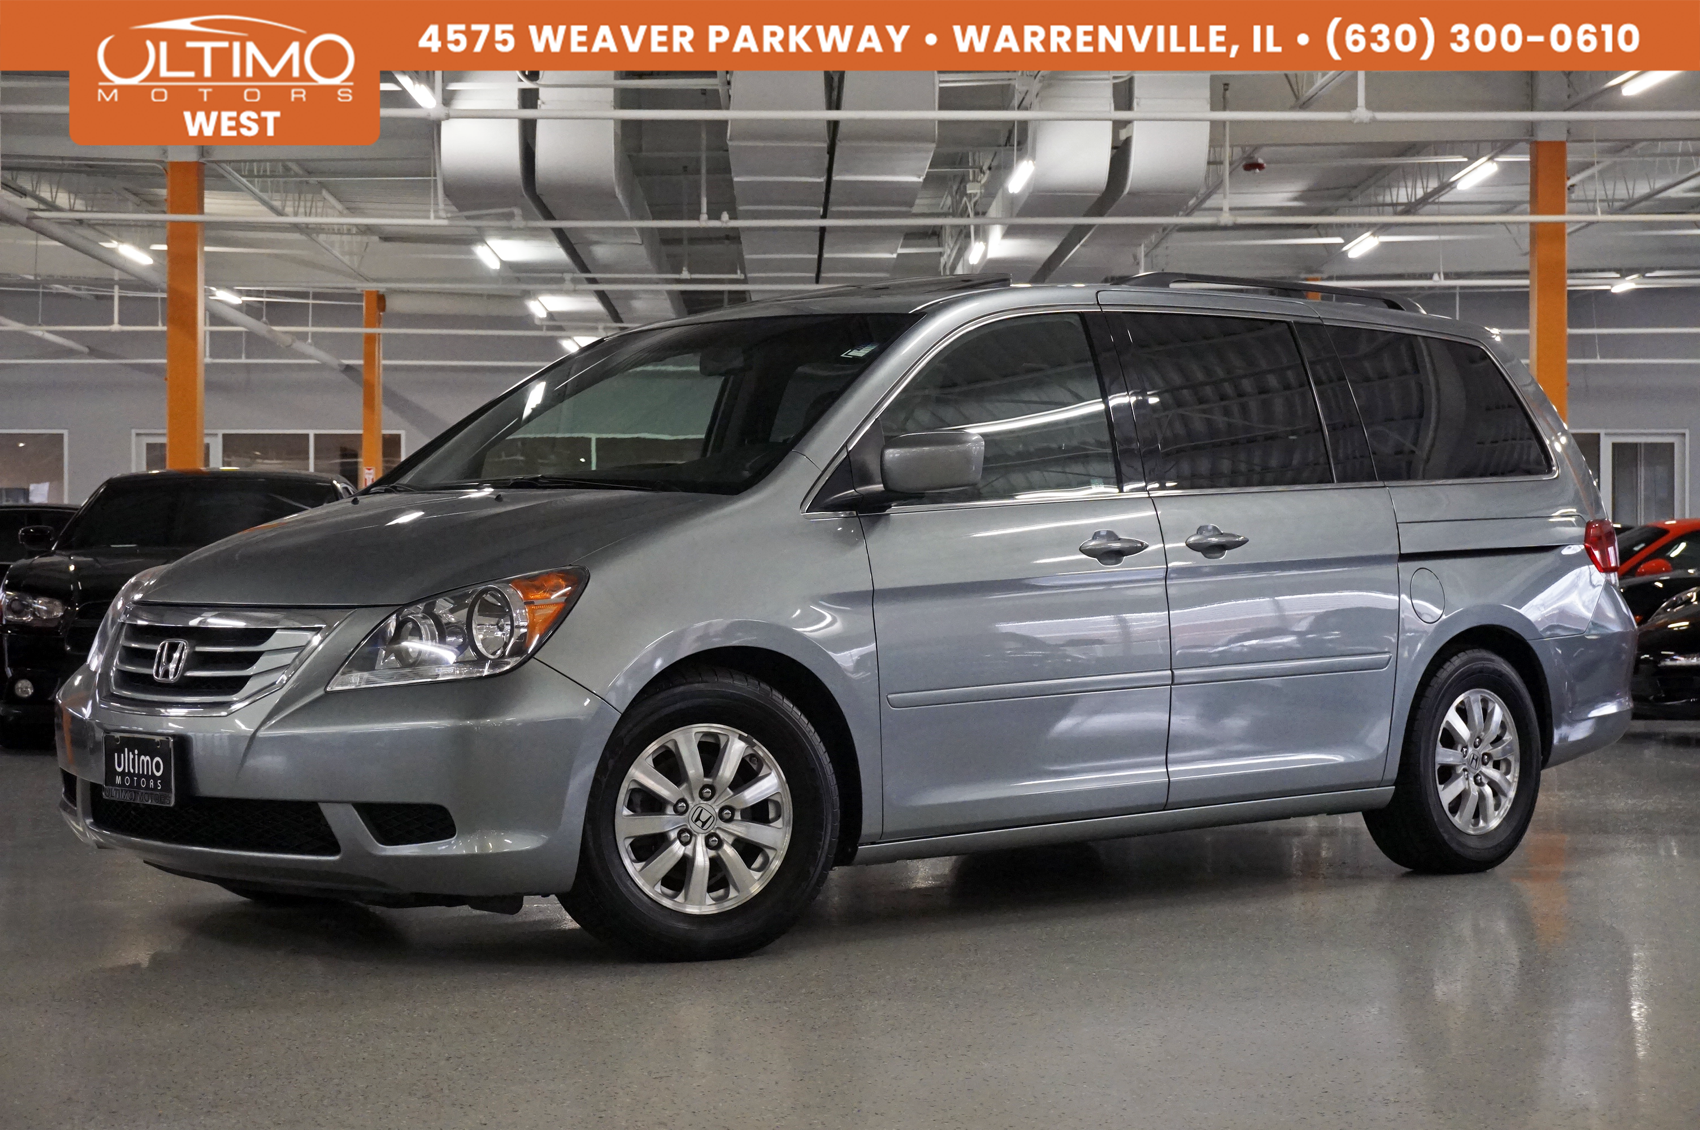 Pre-Owned 2009 Honda Odyssey EX-L with Rear Entertainment, Heated Seats, 1-Owner